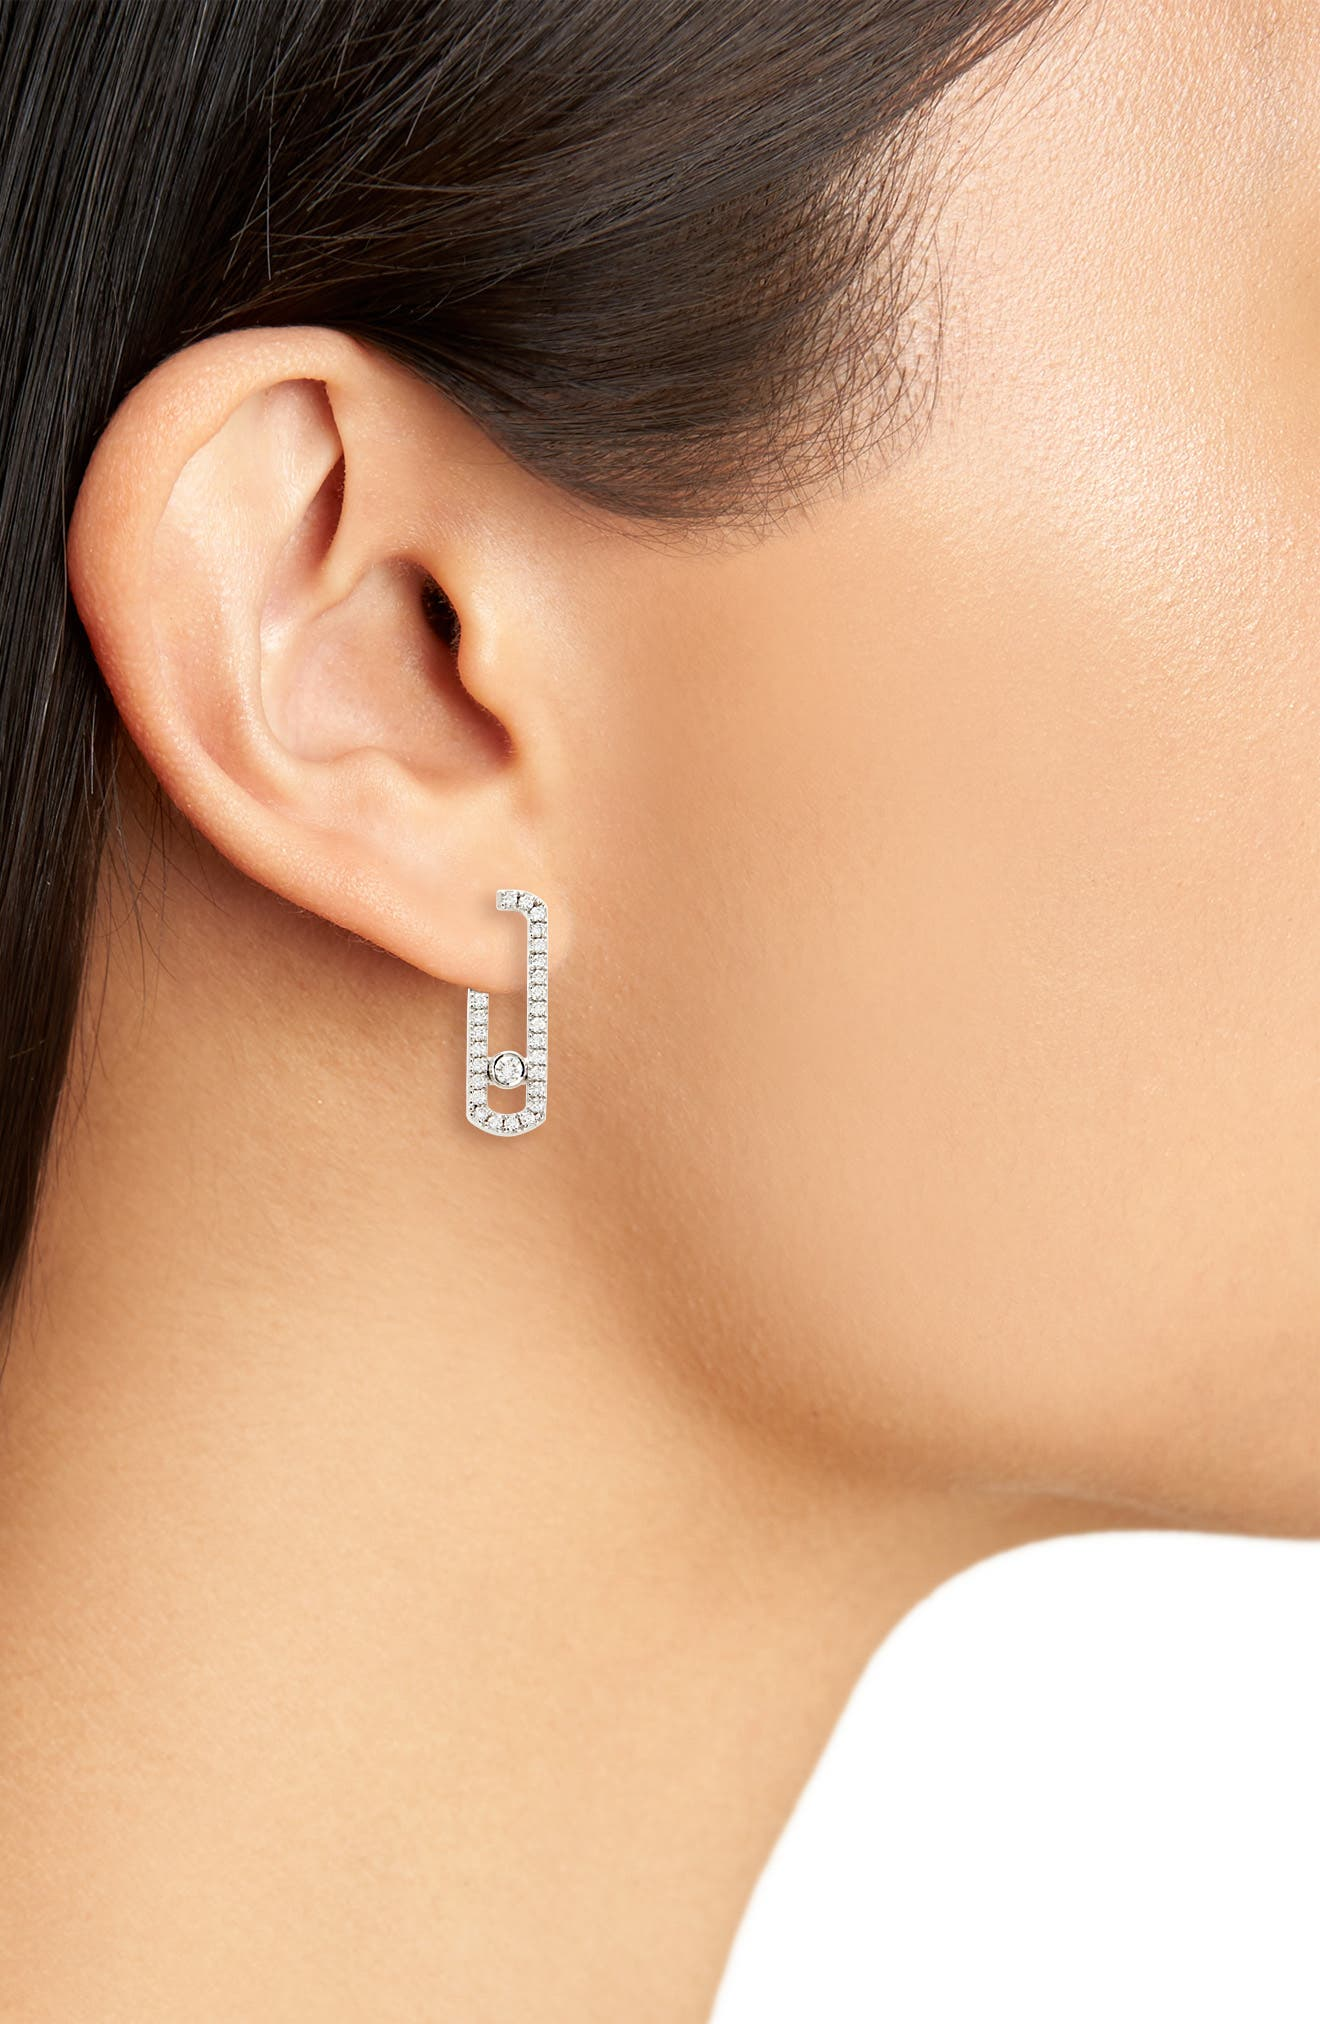 Move Addiction by Gigi Hadid Diamond Pavé Earrings,                             Alternate thumbnail 2, color,                             White Gold